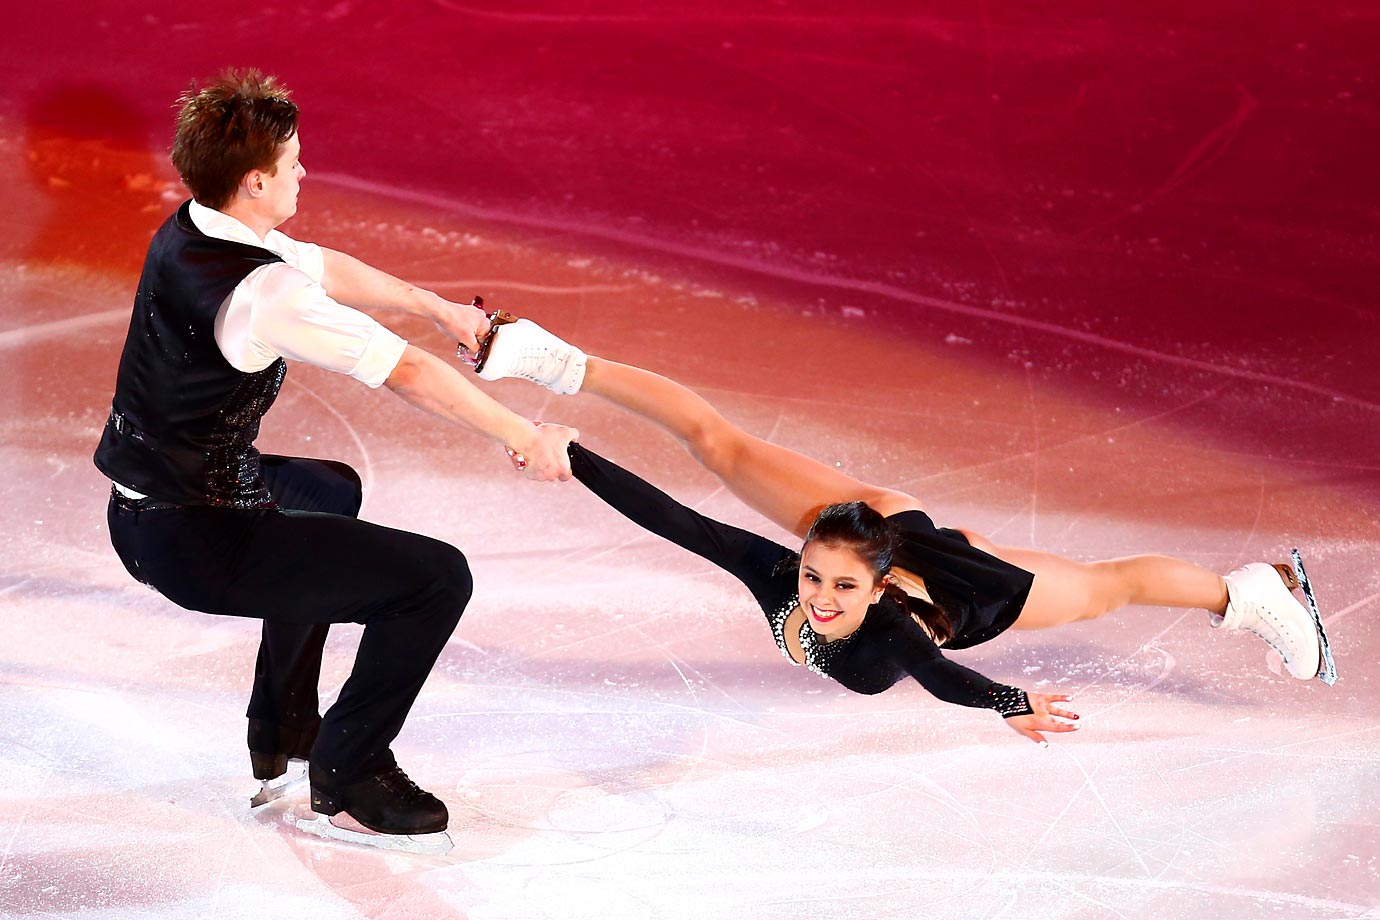 Maxim Miroshkin and Lina Fedorova of Russia perform during the Gala Exhibition of the ISU World Junior Figure Skating Championships. That has to hurt.